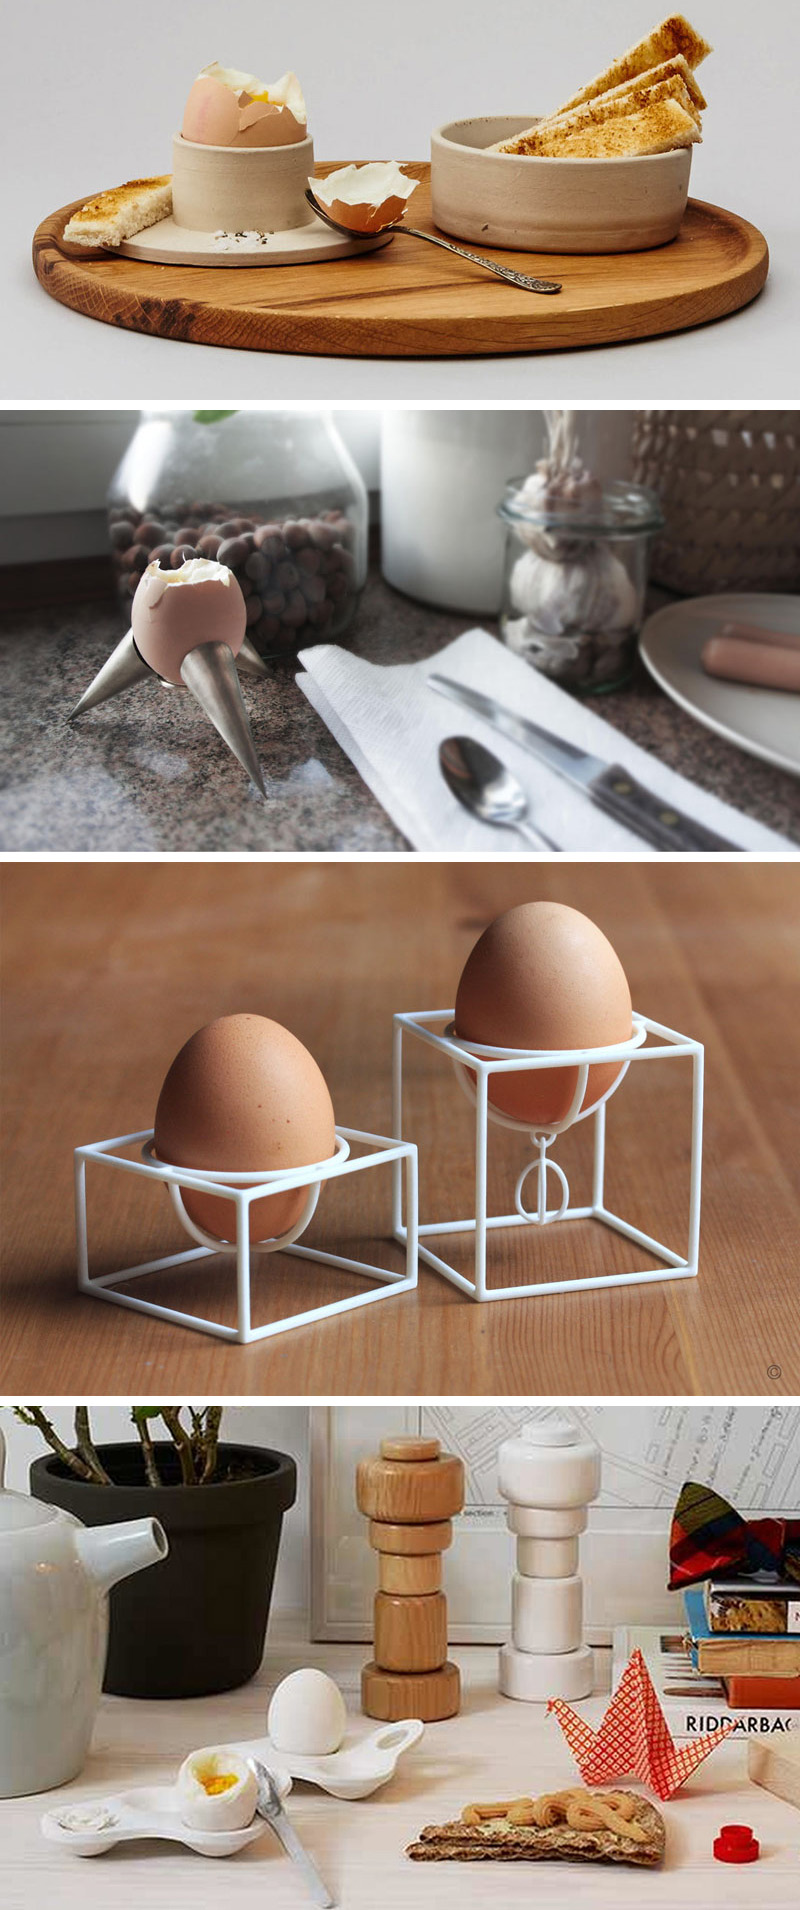 If you're looking for stylish way to dress up your eggs in the morning, here's a collection of 13 modern egg cups to inspire you.